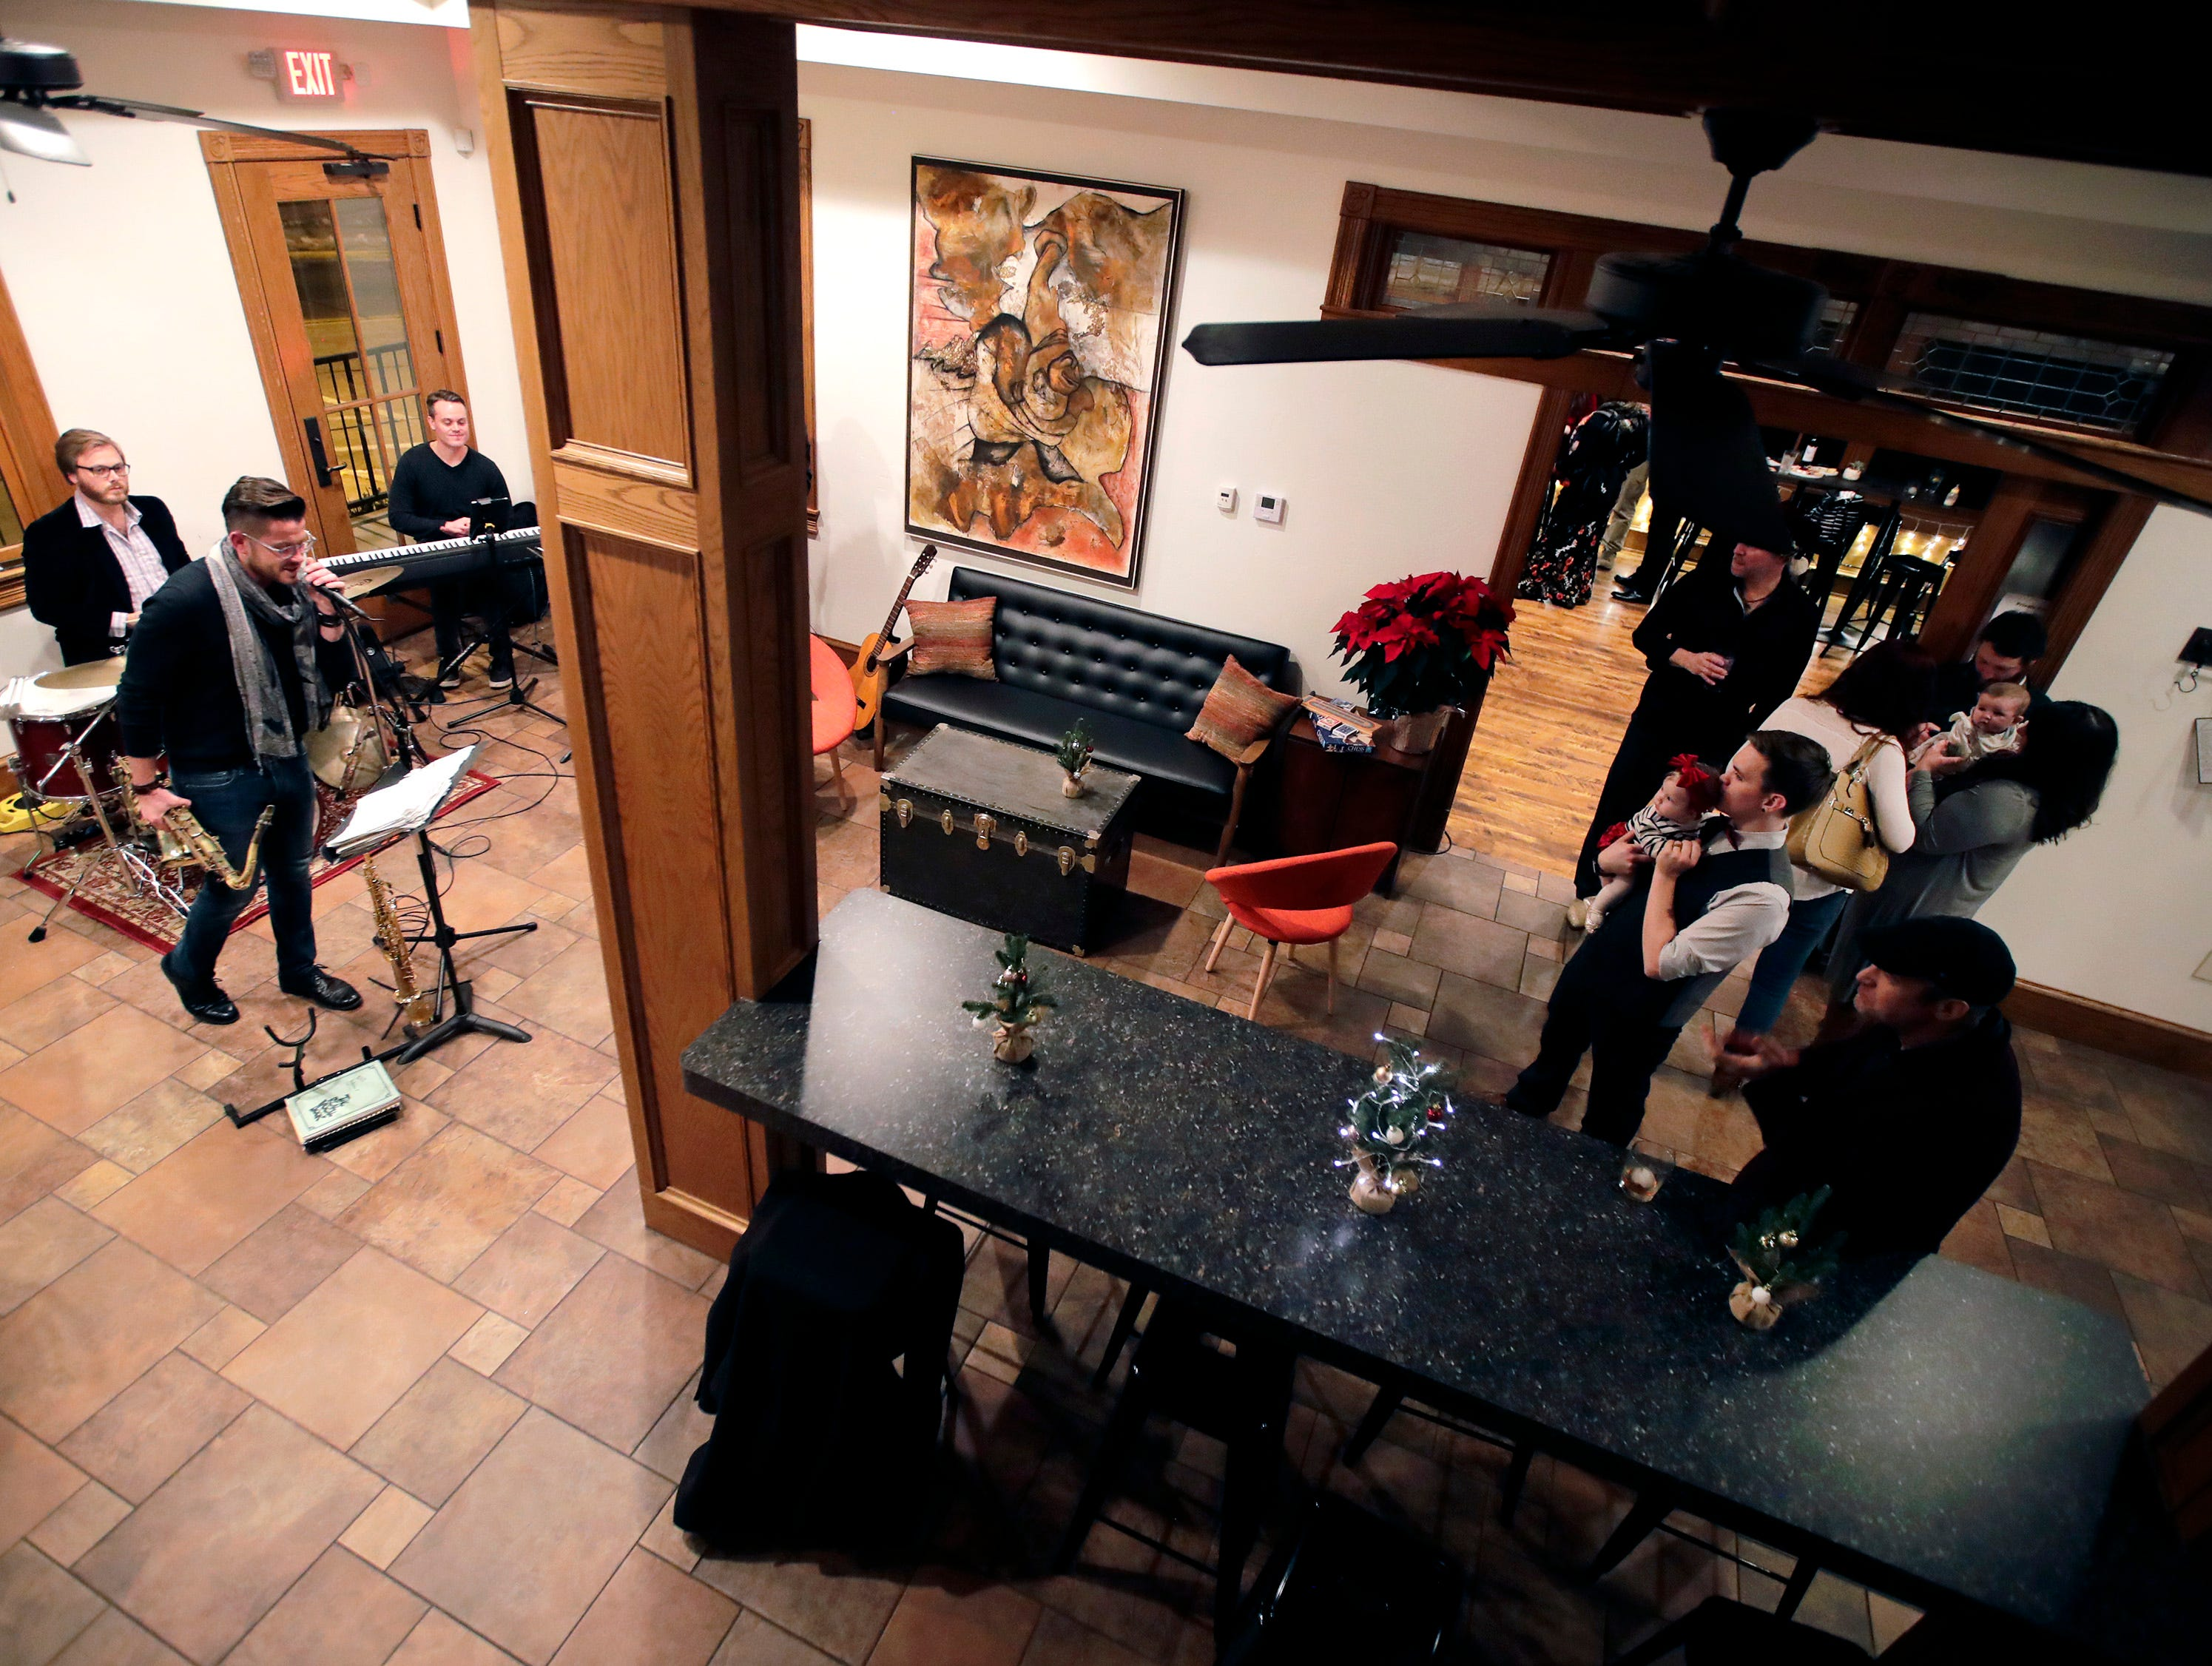 Jazz musicians Ross Catterton, Zach Harmon, Noah Harmon and Gordon Lewis perform for a private party during the soft opening for at 313 Dodge Thursday, Dec. 13, 2018, in Kaukauna, Wis.Danny Damiani/USA TODAY NETWORK-Wisconsin